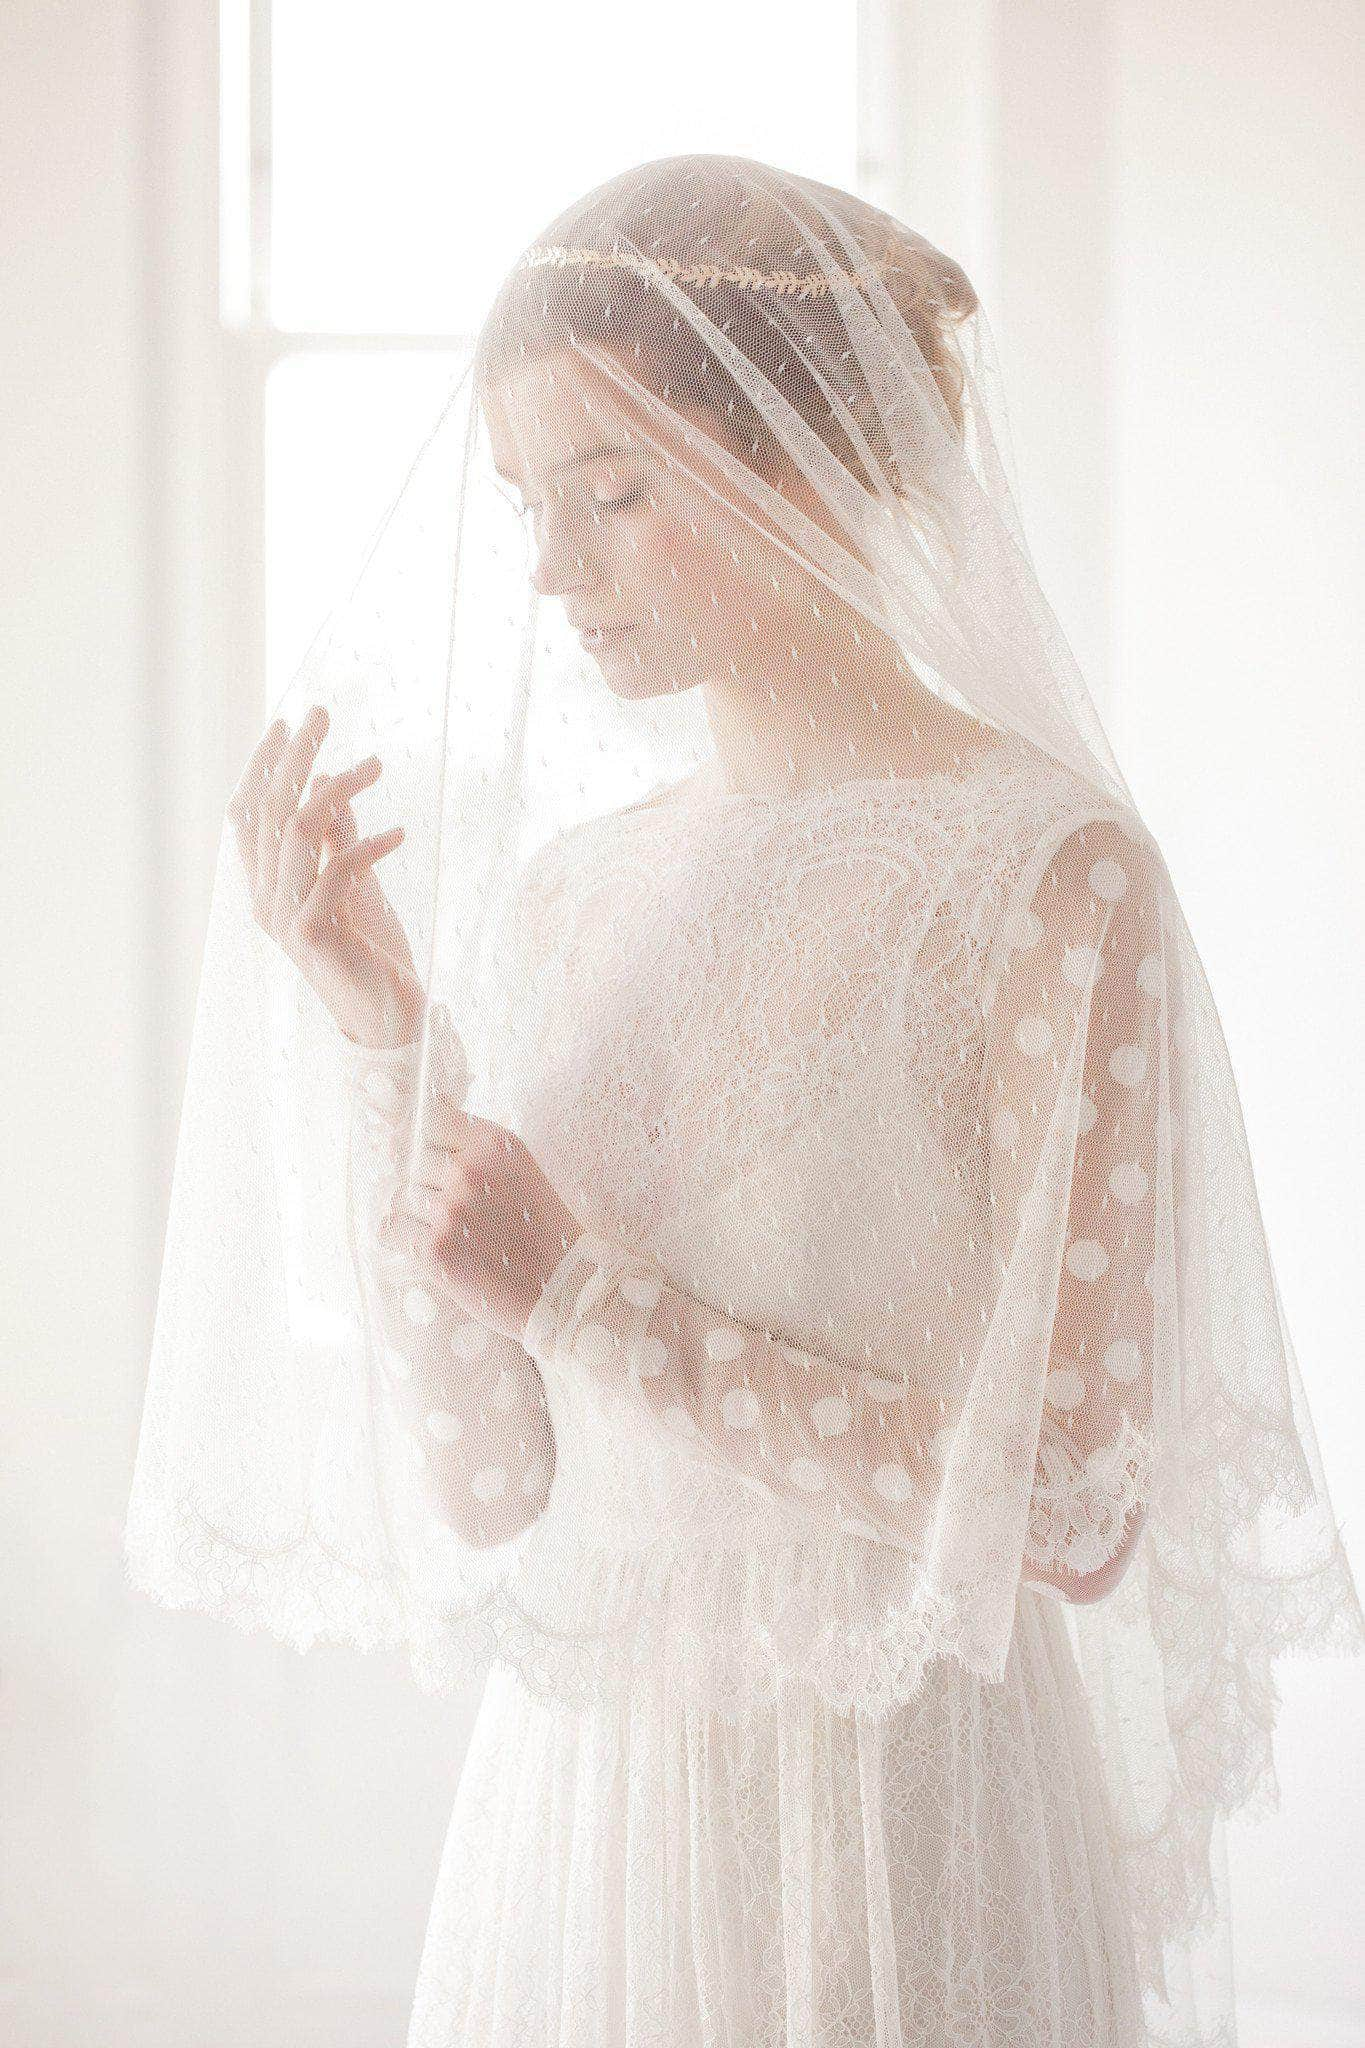 What is a two tier veil? | Drop Wedding Veil With Polka Dot Tulle And French Eyelash Lace Trim- 'Amie' | Britten Weddings